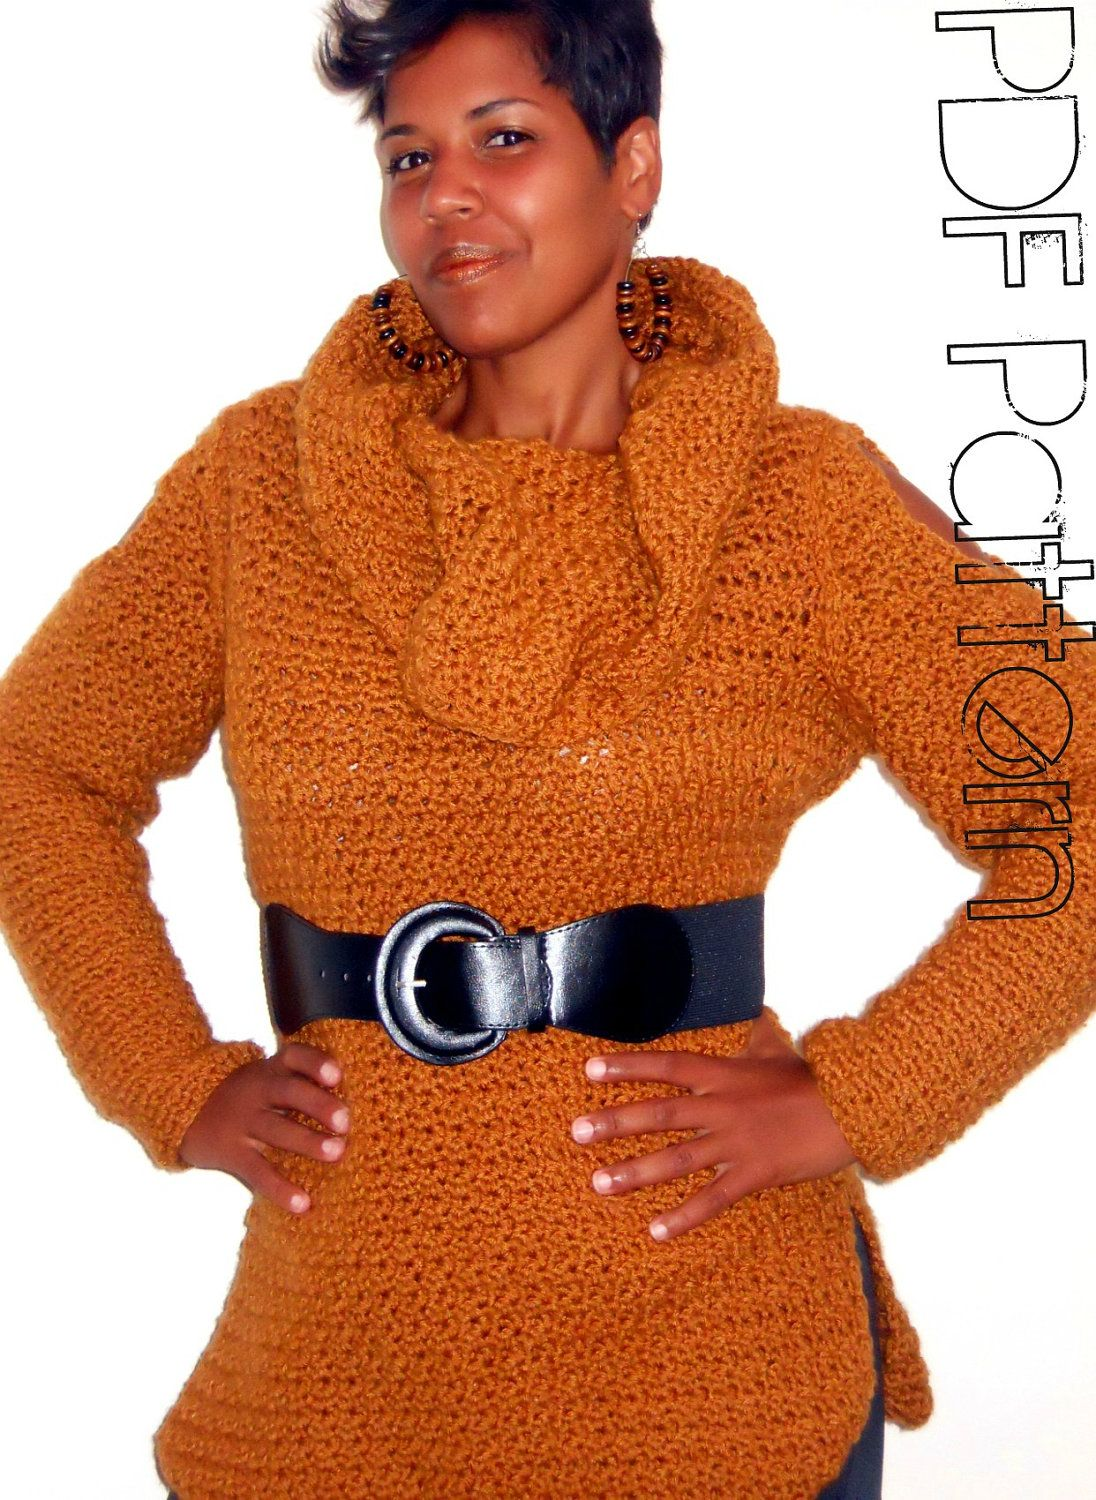 Crochet Cowl Pattern | Crochet Cowl Neck Sweater Pattern | crochet ...